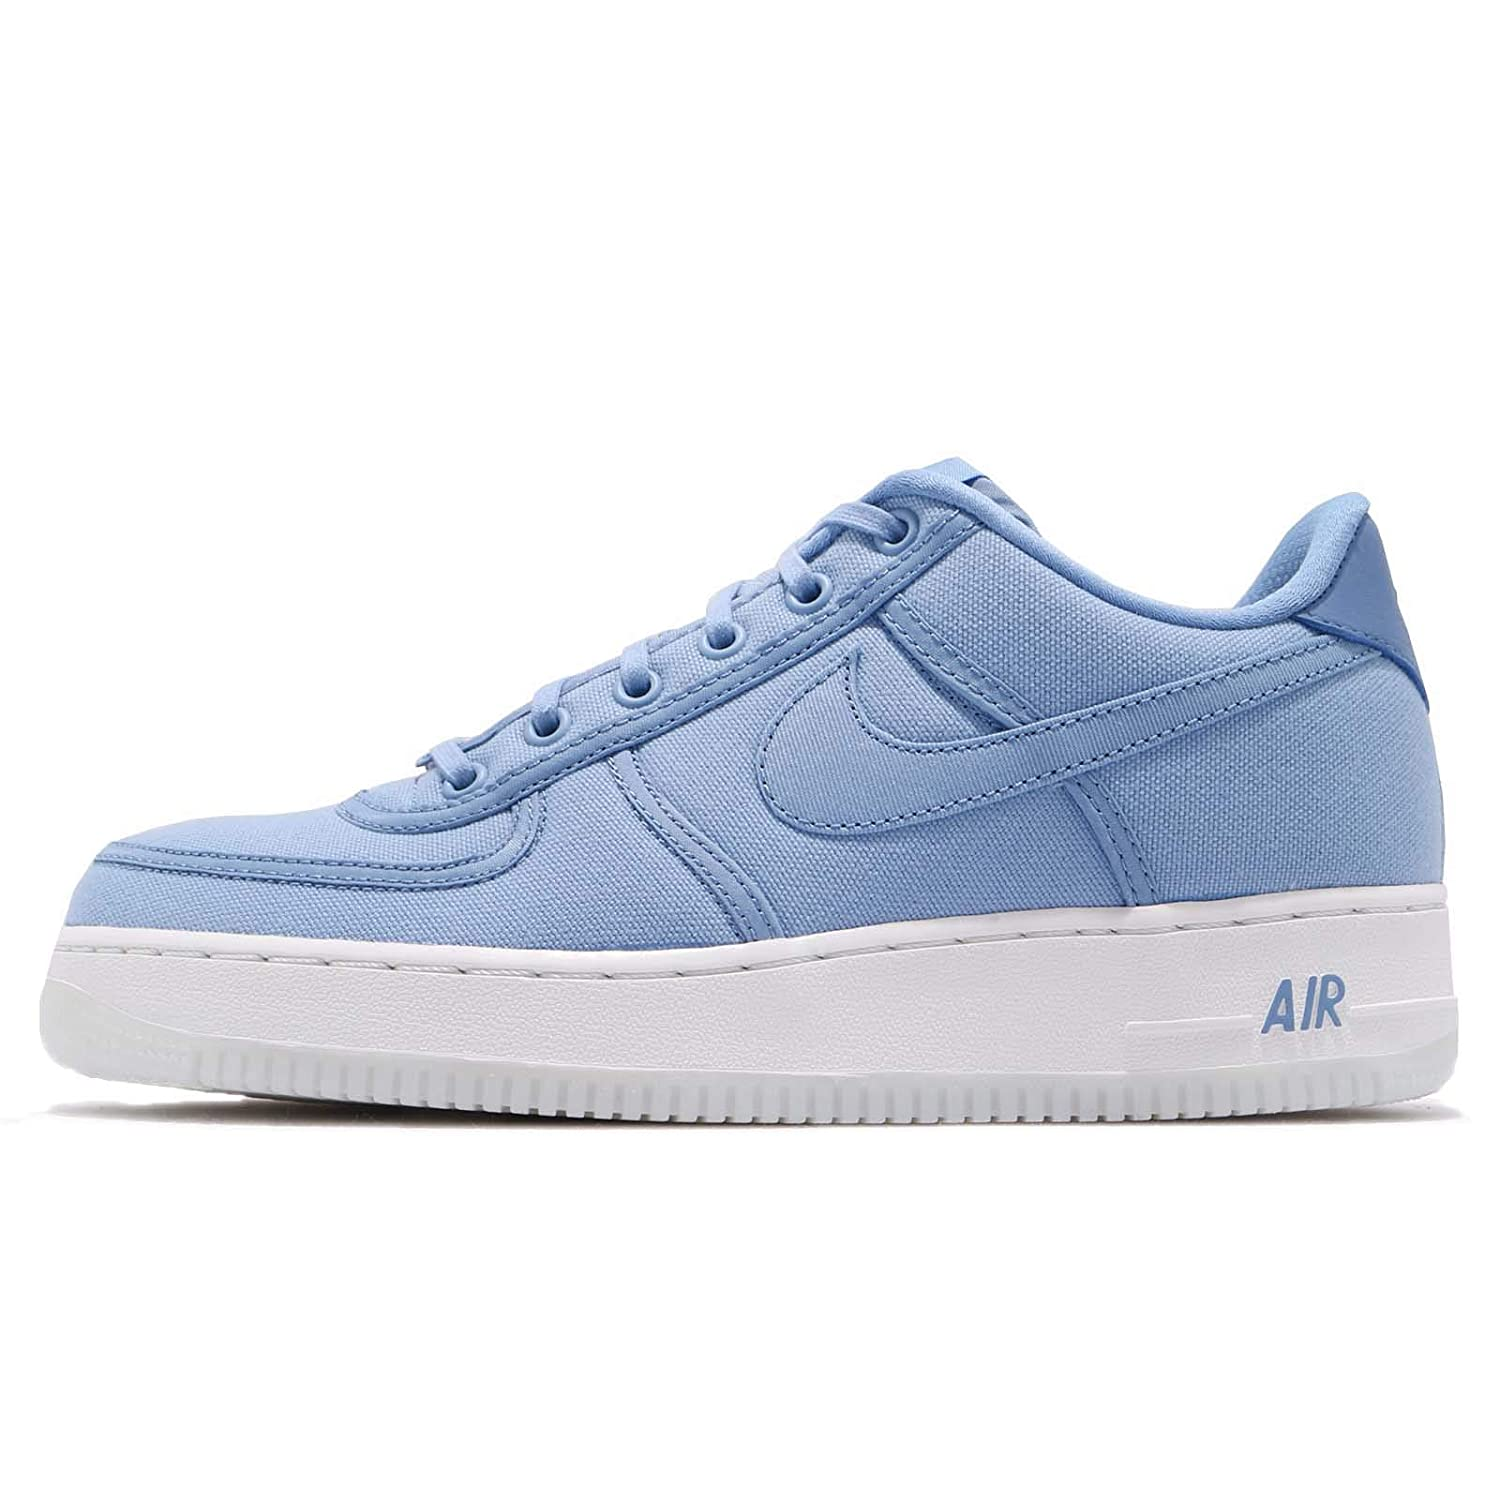 official photos d9888 9ba59 Amazon.com   Nike Air Force 1 Low Retro Qs CNVS Mens Ah1067-401   Running